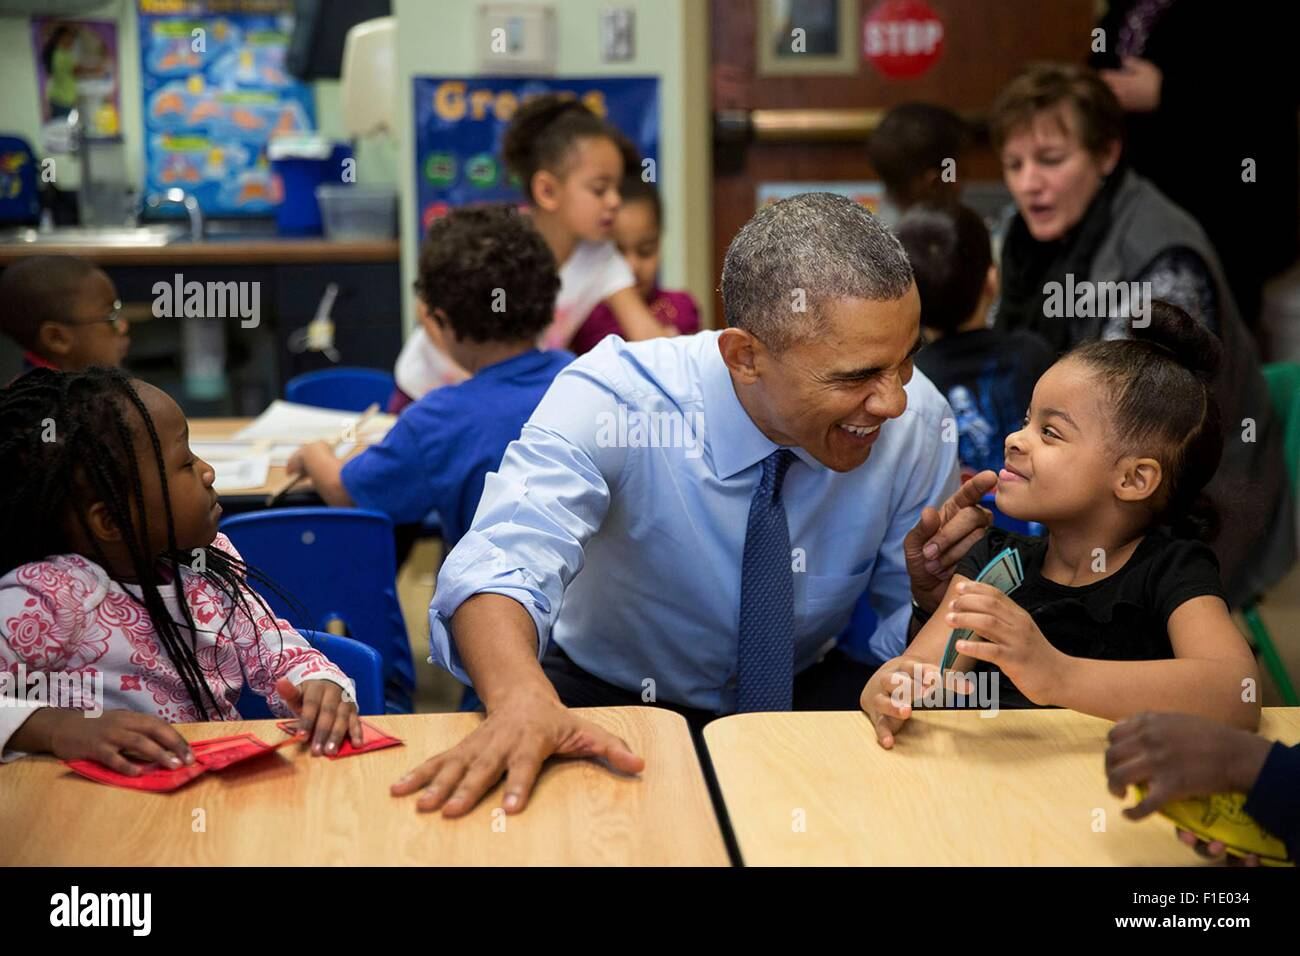 U.S. President Barack Obama gestures as he talks with Akira Cooper during a visit to the Community Children's - Stock Image